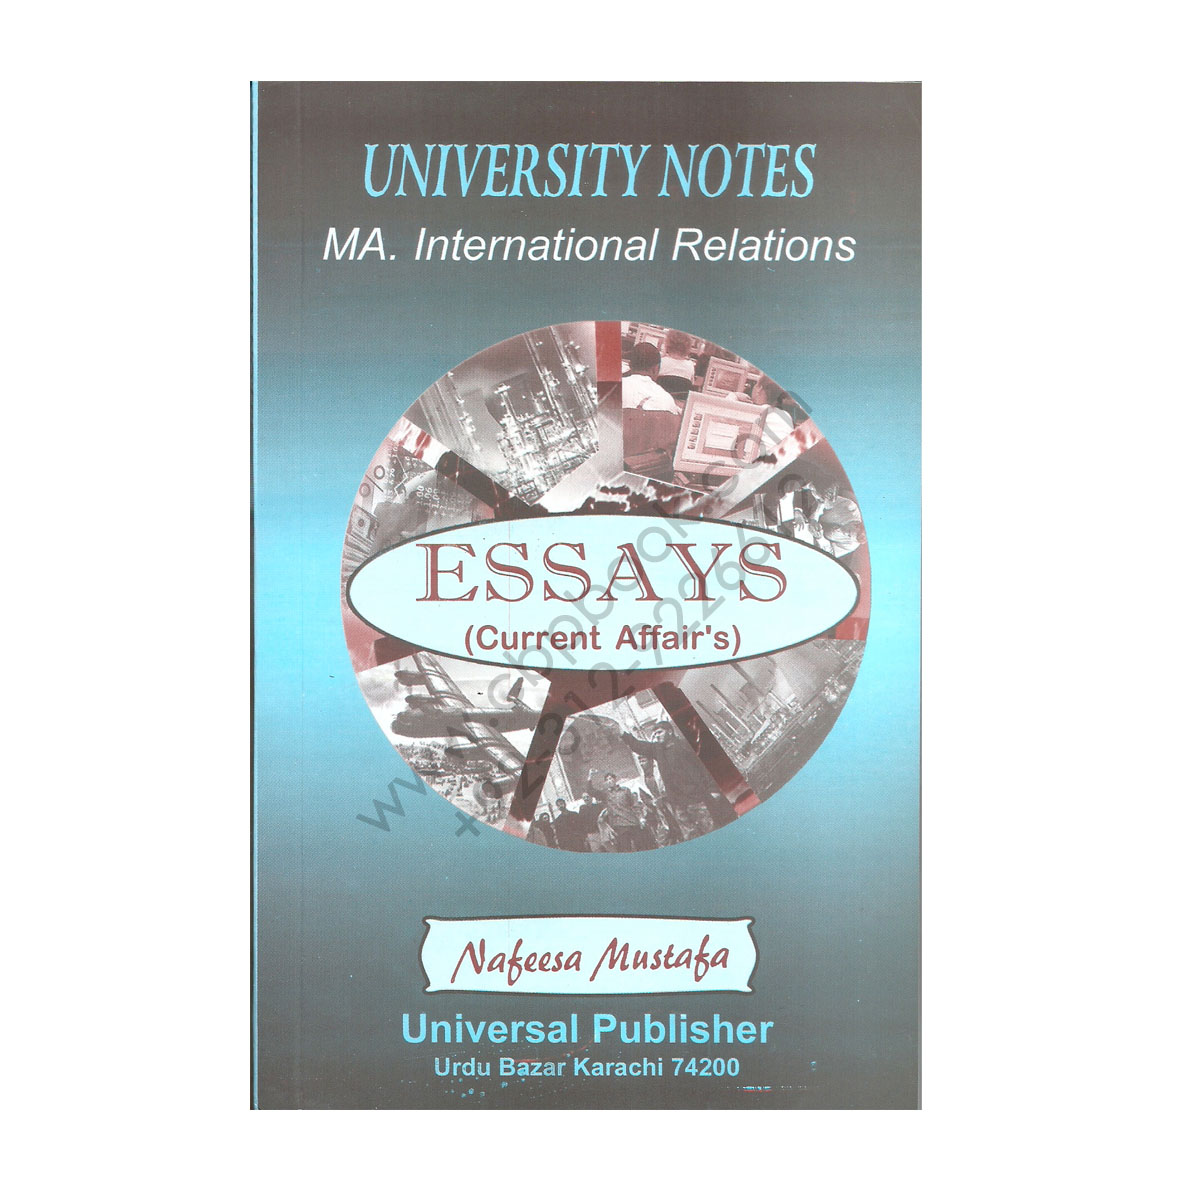 ma international relations essays on current affair nafeesa  ma international relations essays